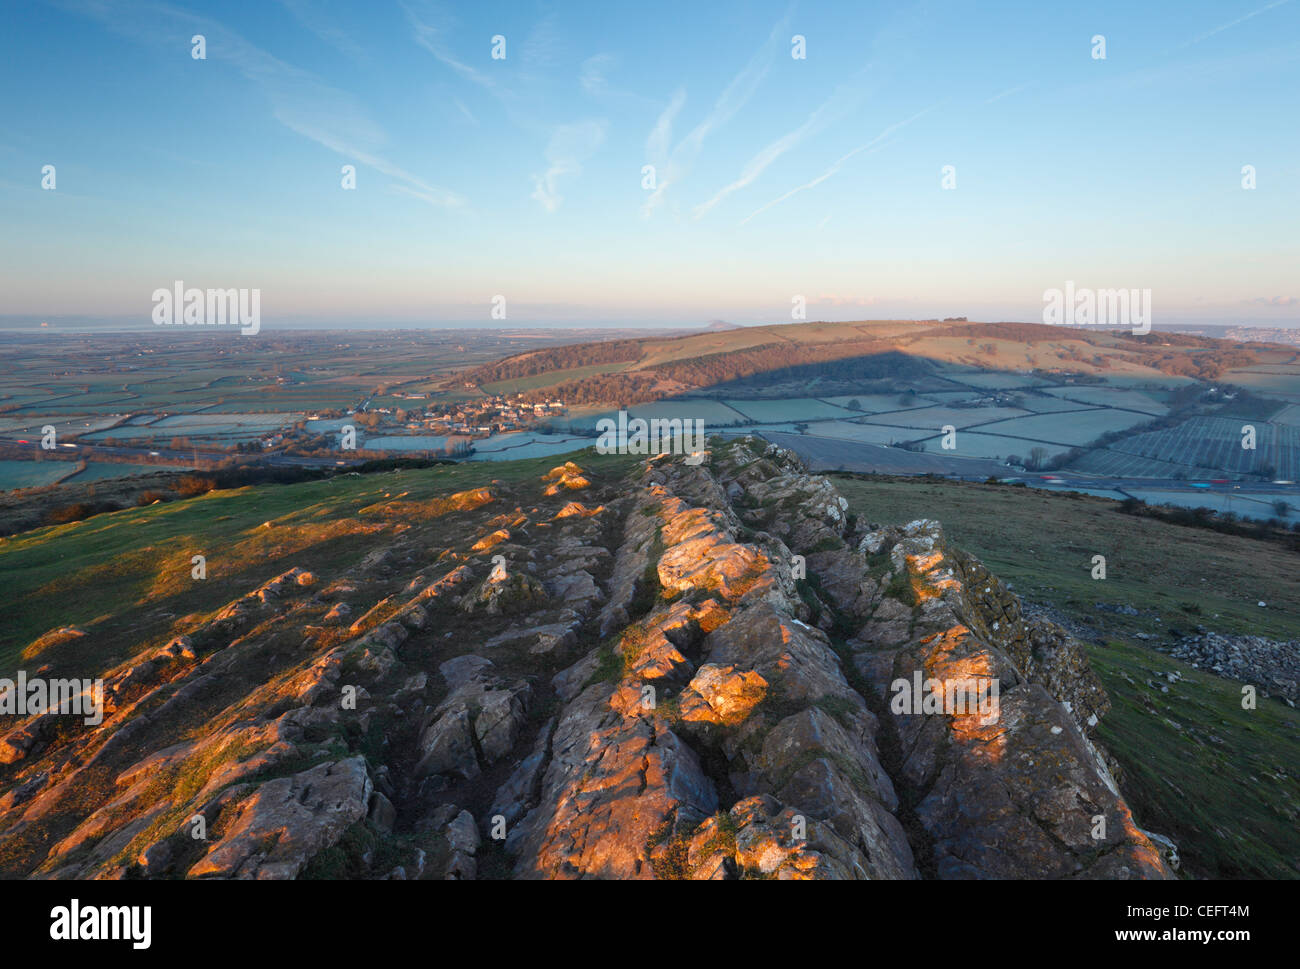 View from the summit of Crook Peak towards Bleadon Hill, Brean Down and the Bristol Channel. Somerset. England. - Stock Image